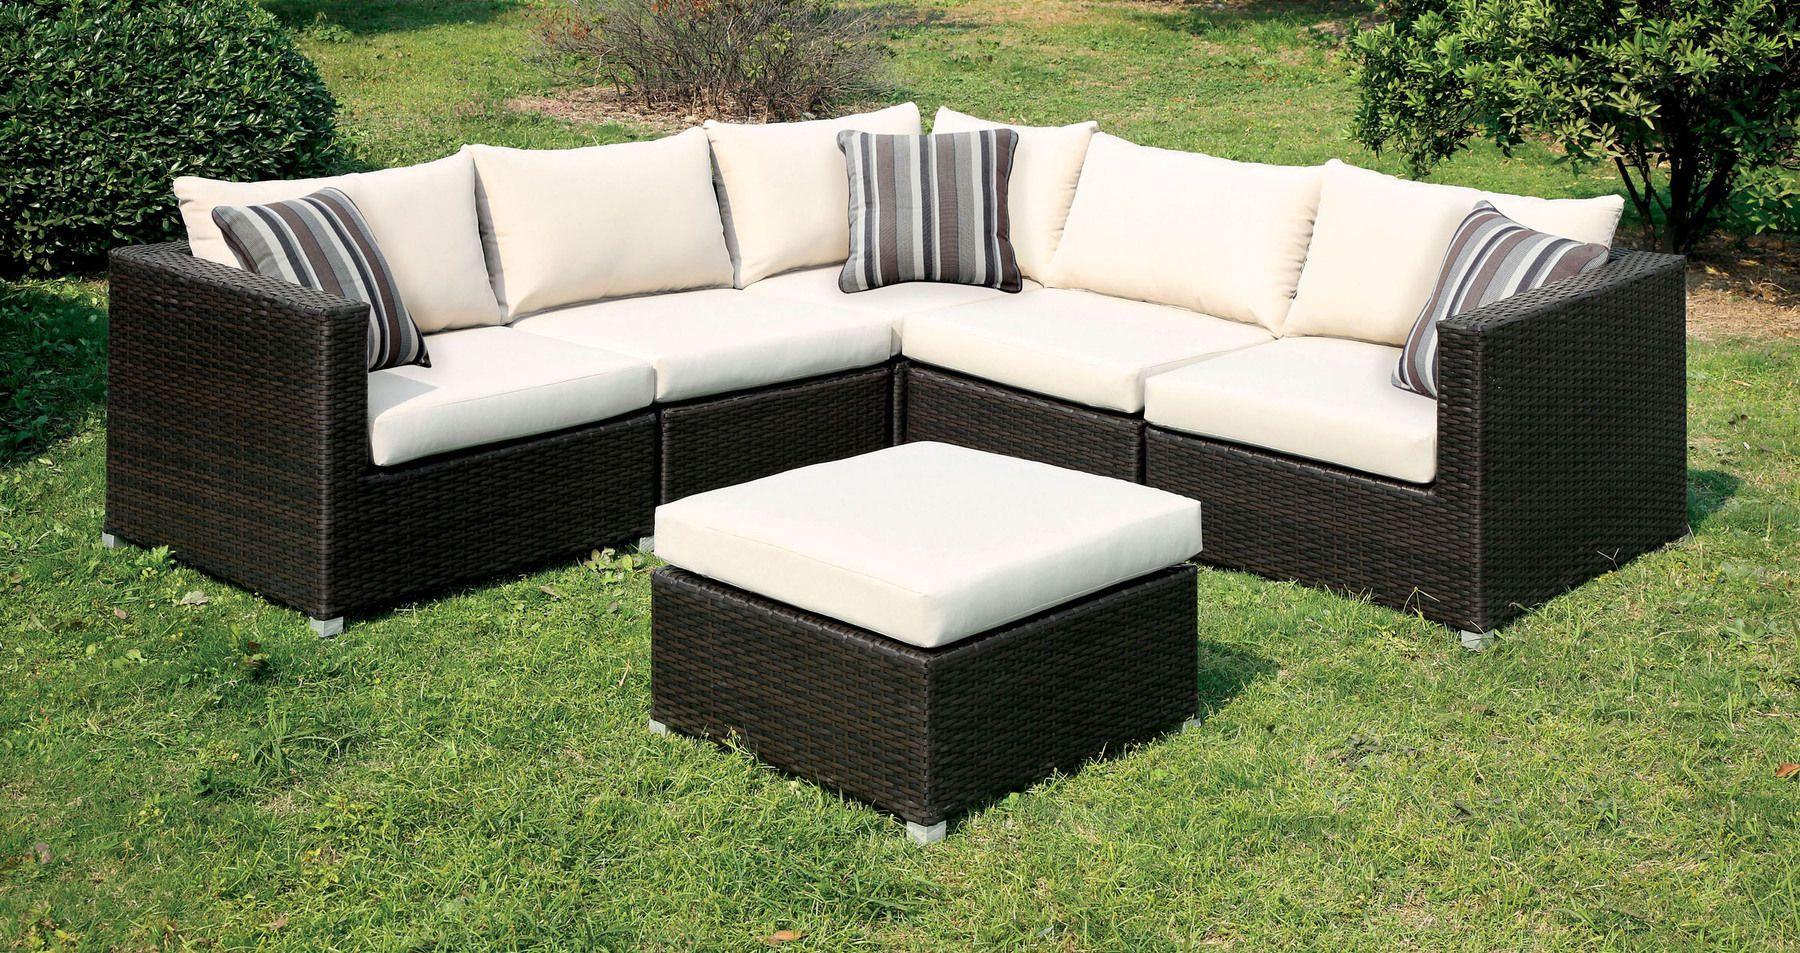 Abion Ivory Set In 2020 Outdoor Furniture Sets Outdoor Sofa